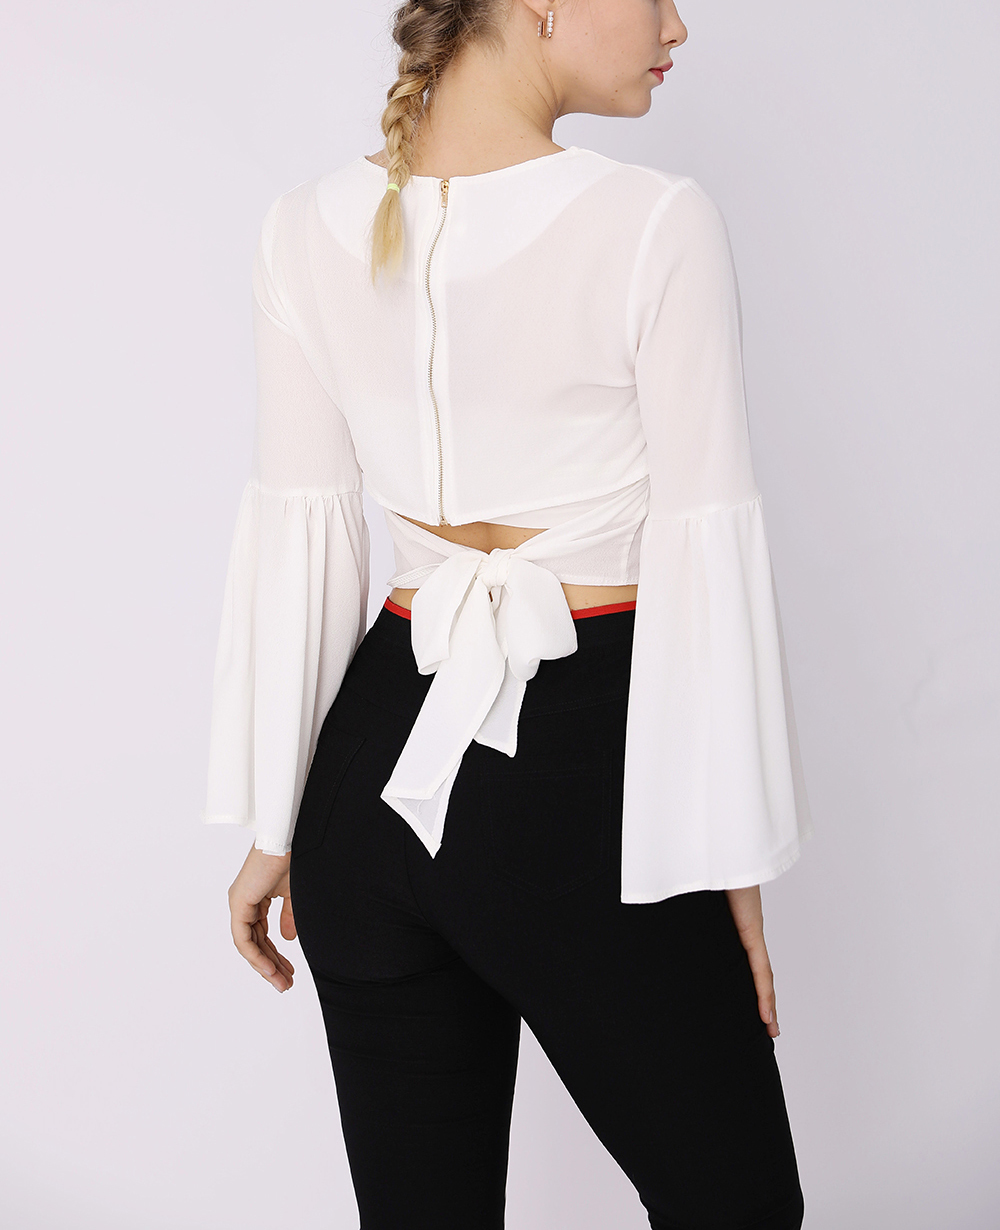 Cropped Top with Long Bell Sleeves